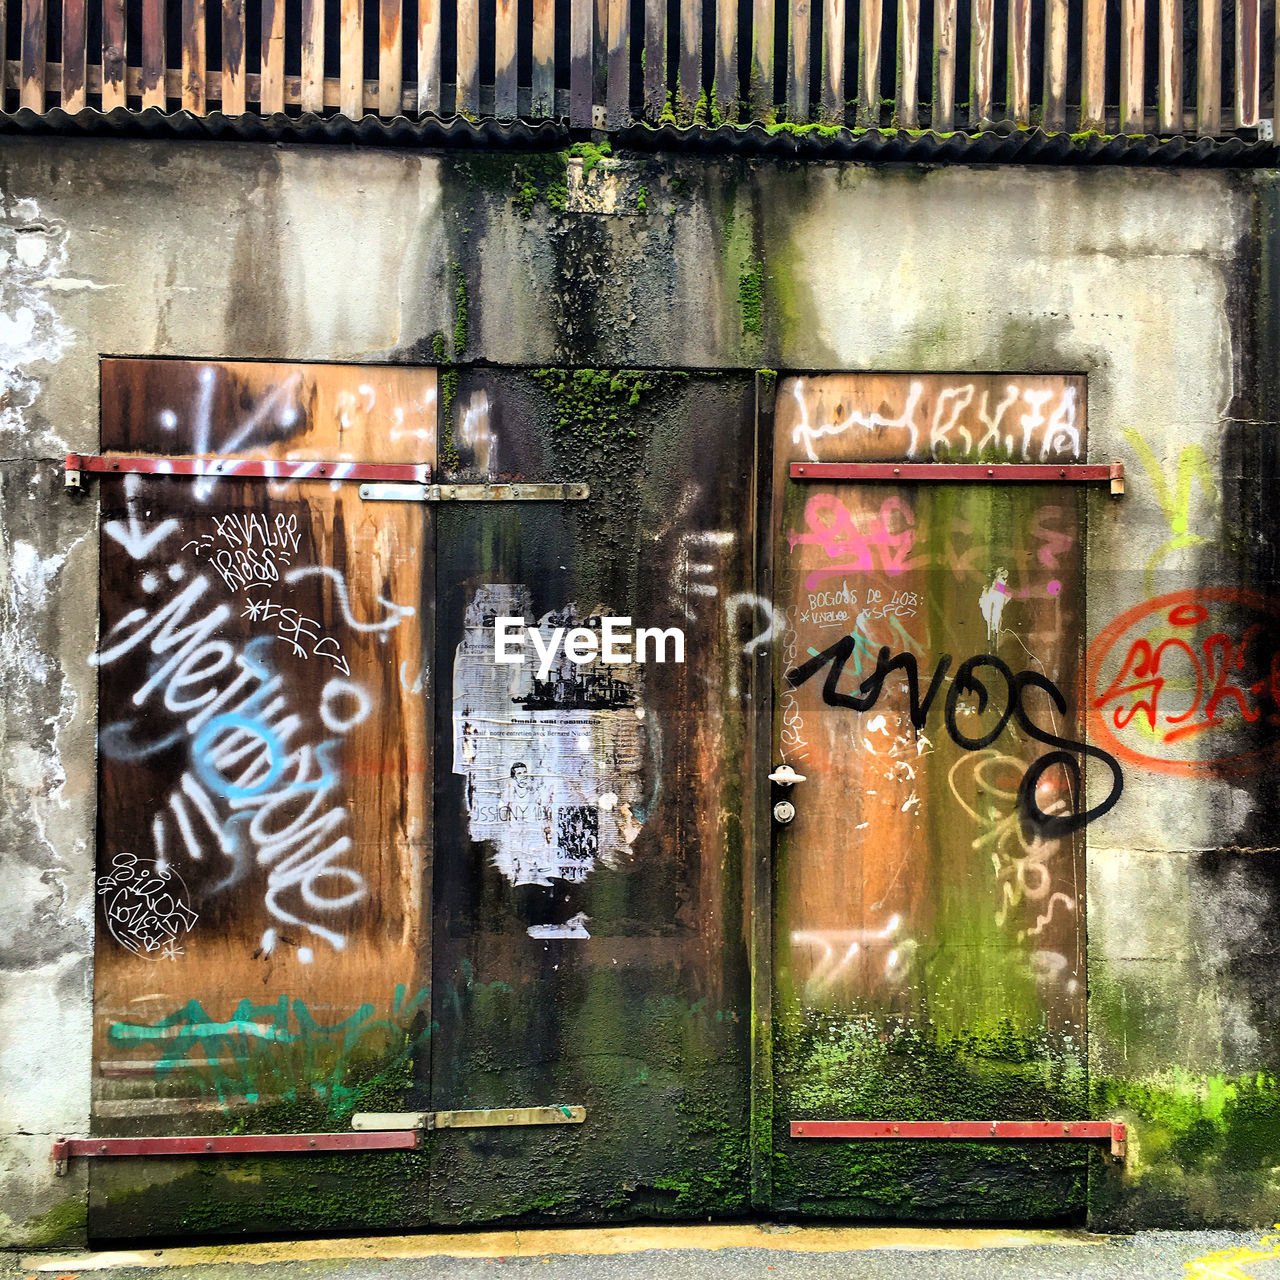 graffiti, text, metal, no people, day, communication, built structure, outdoors, architecture, close-up, building exterior